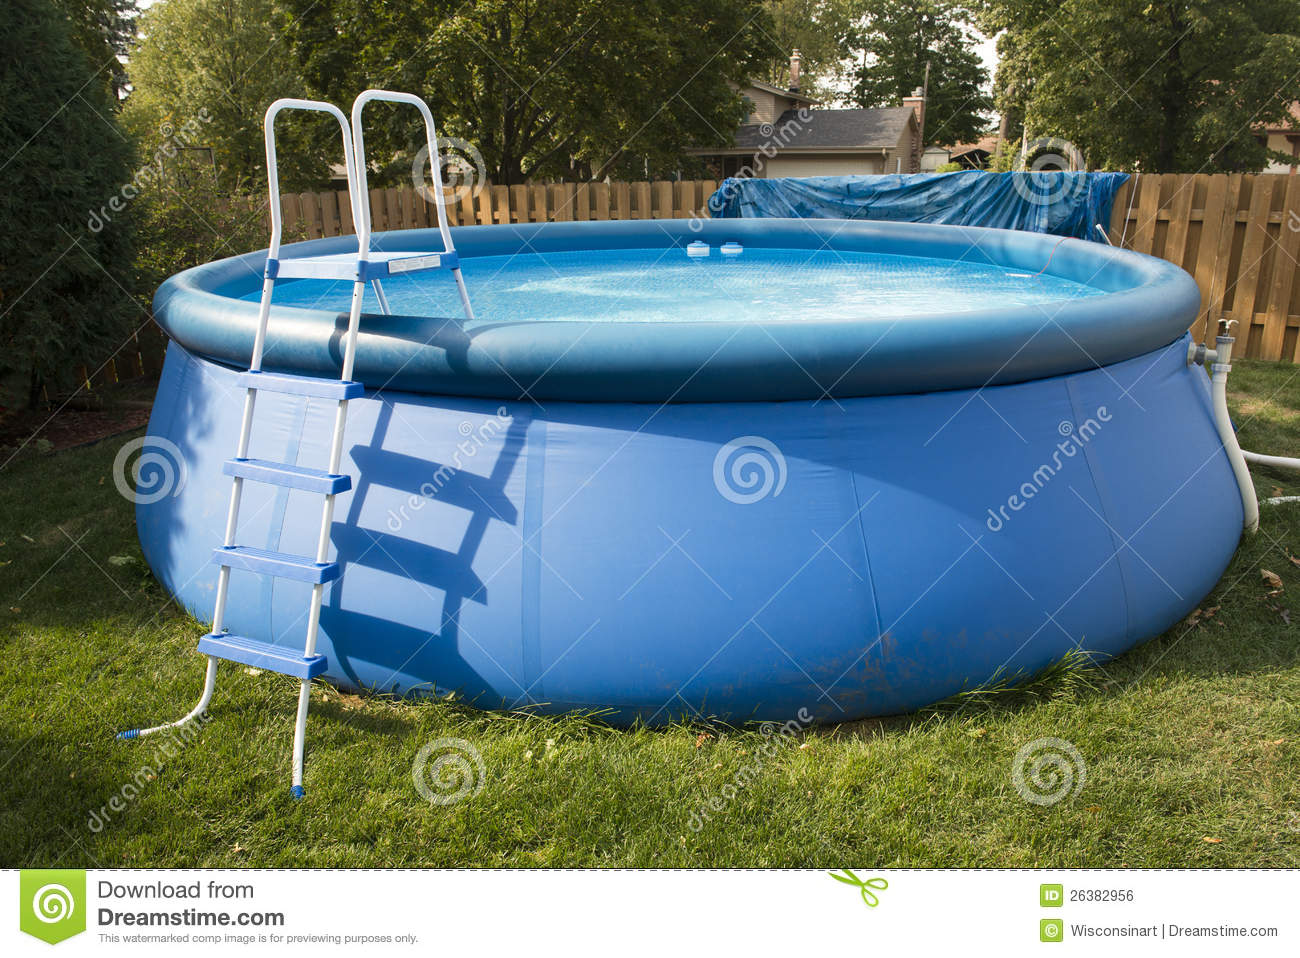 Backyard Swimming Pool - Backyard Swimming Pool Stock Photo. Image Of Inflatable - 26382956